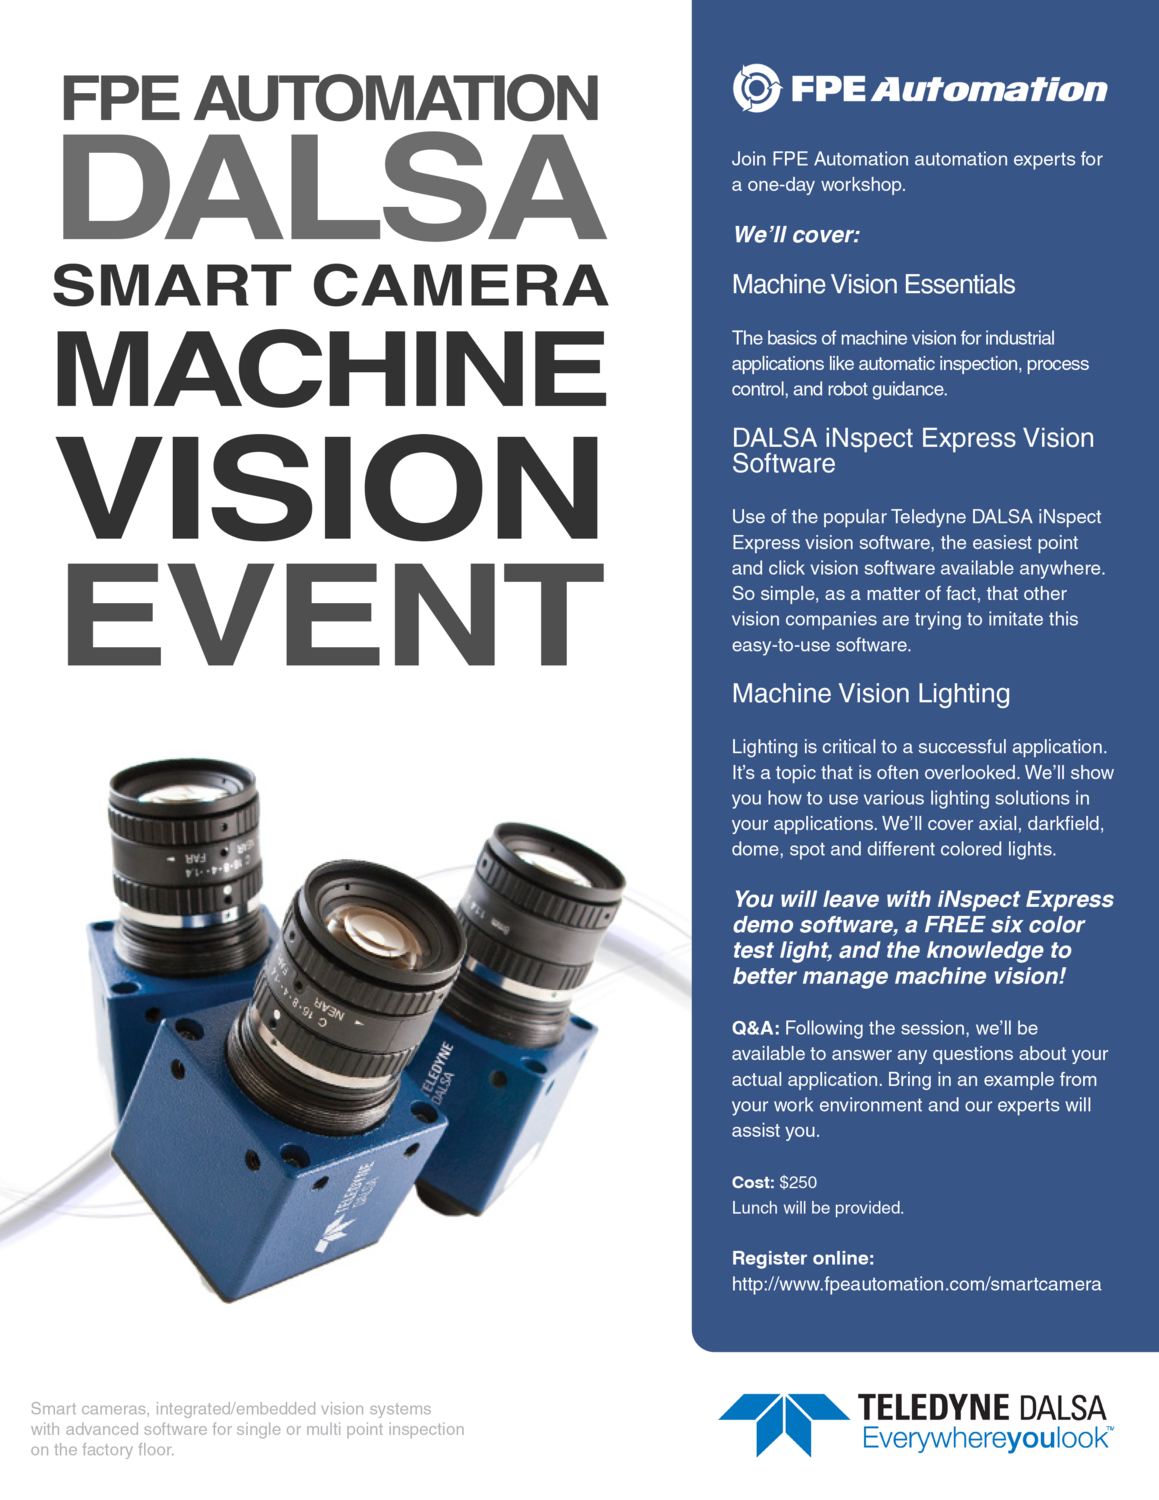 Machine Vision Event with FPE Automation and Dalsa